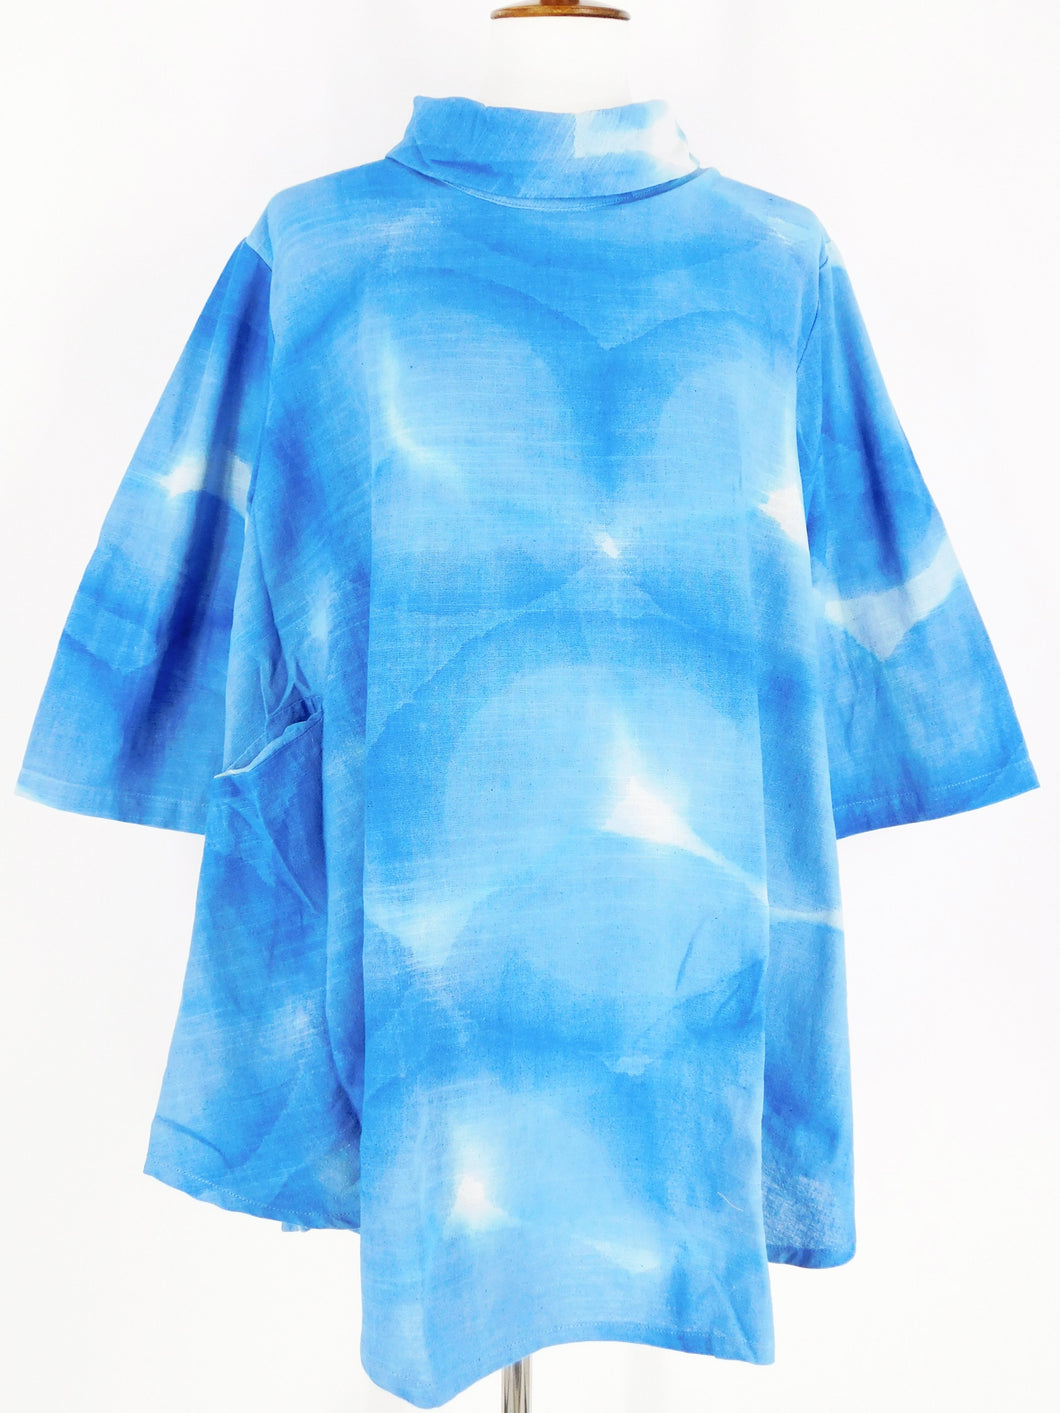 Cowl Neck Pullover - Water Drops Batik - Blue